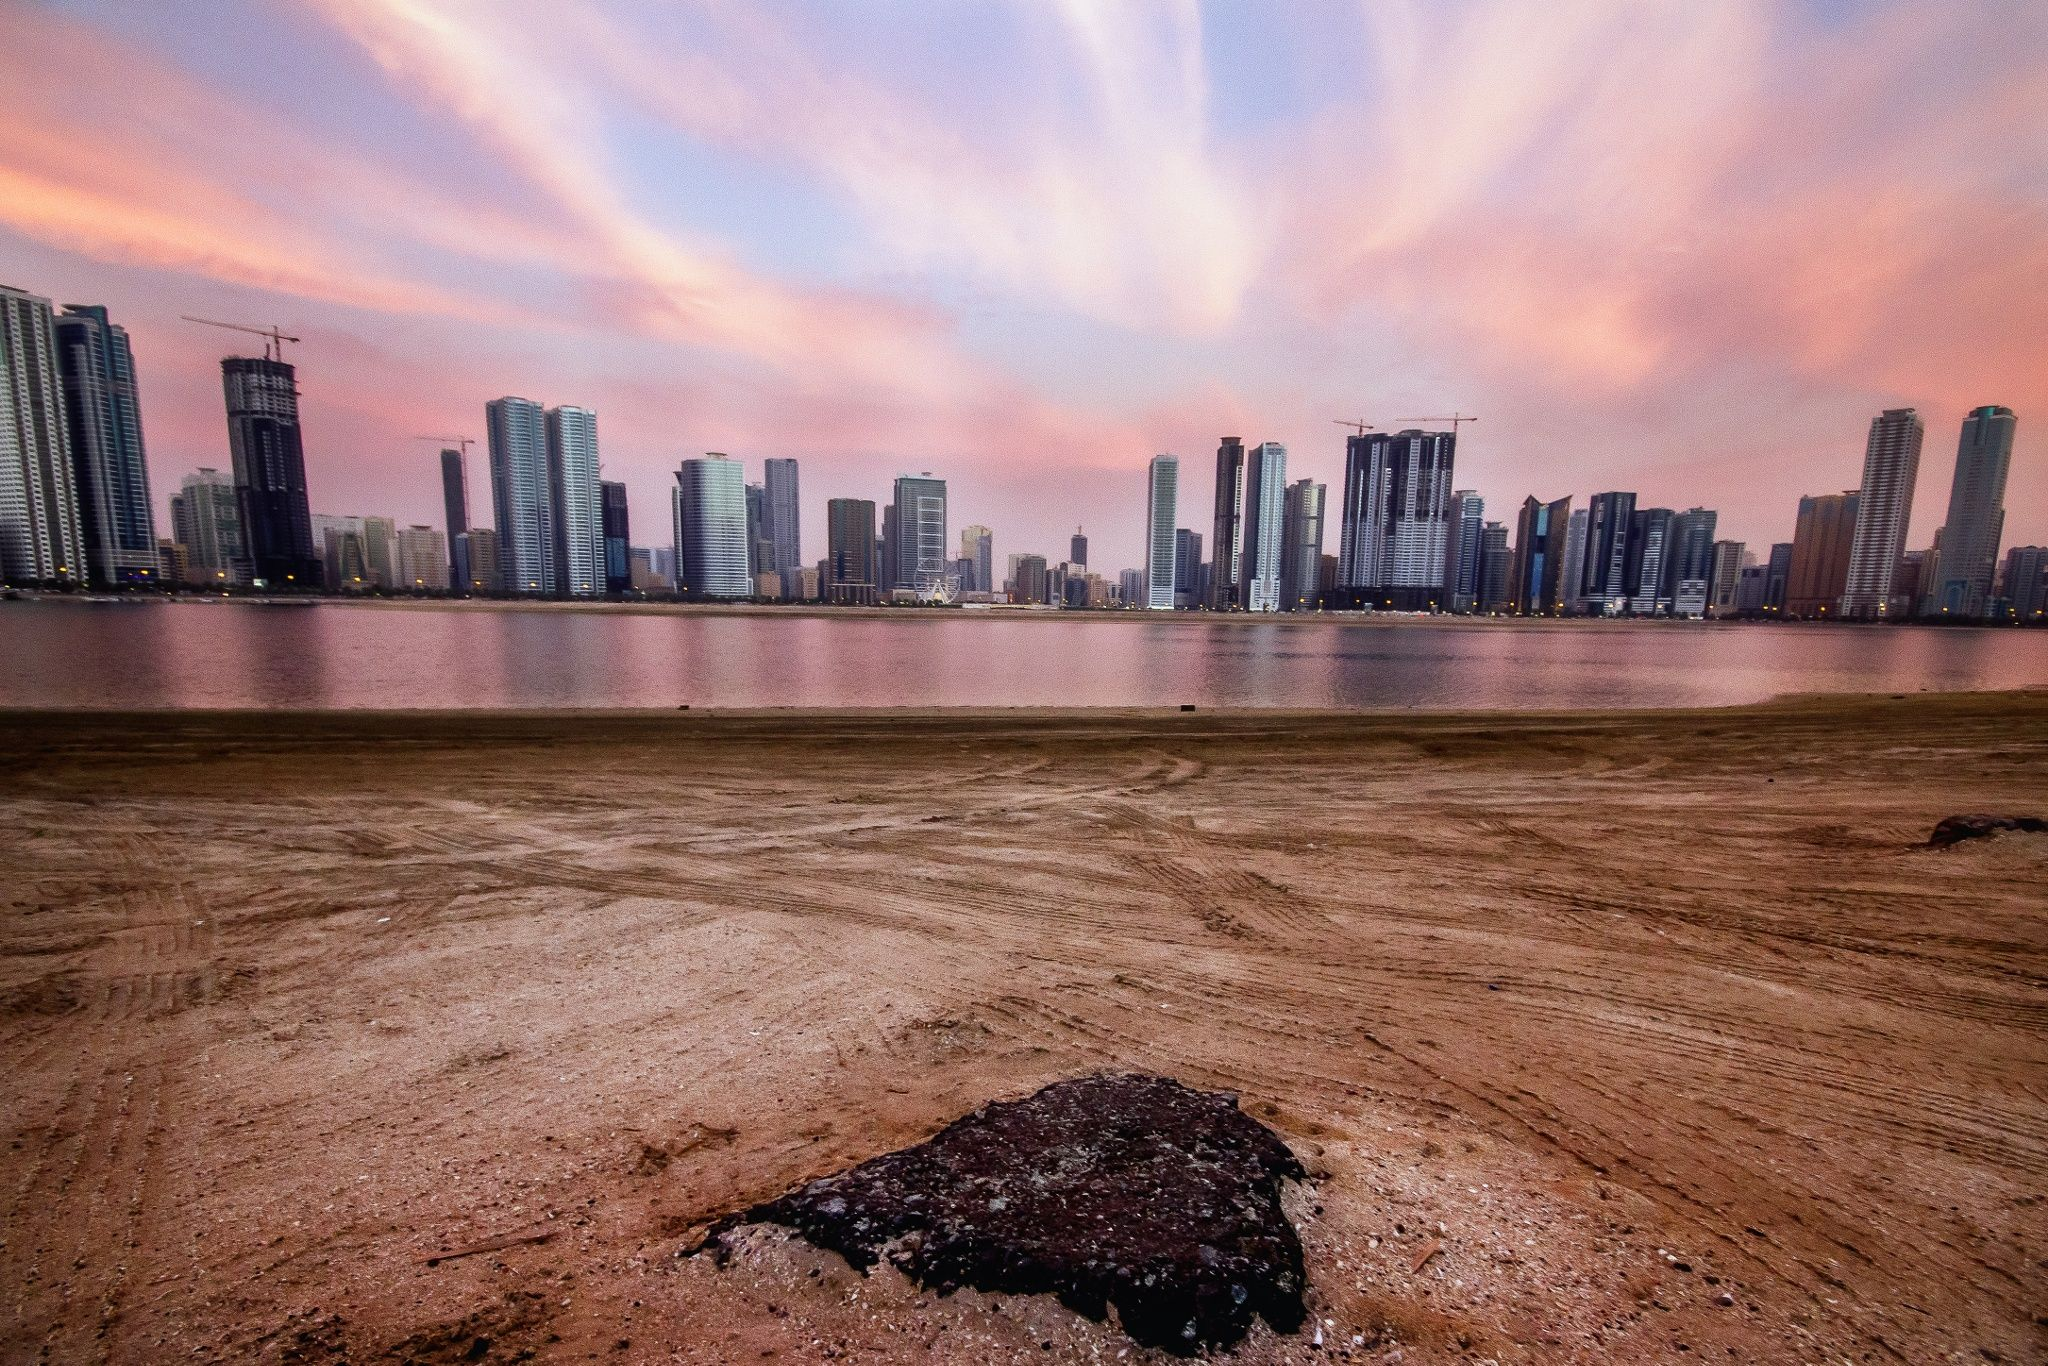 Sunset at beach by Mohamed Azzuni on 500px